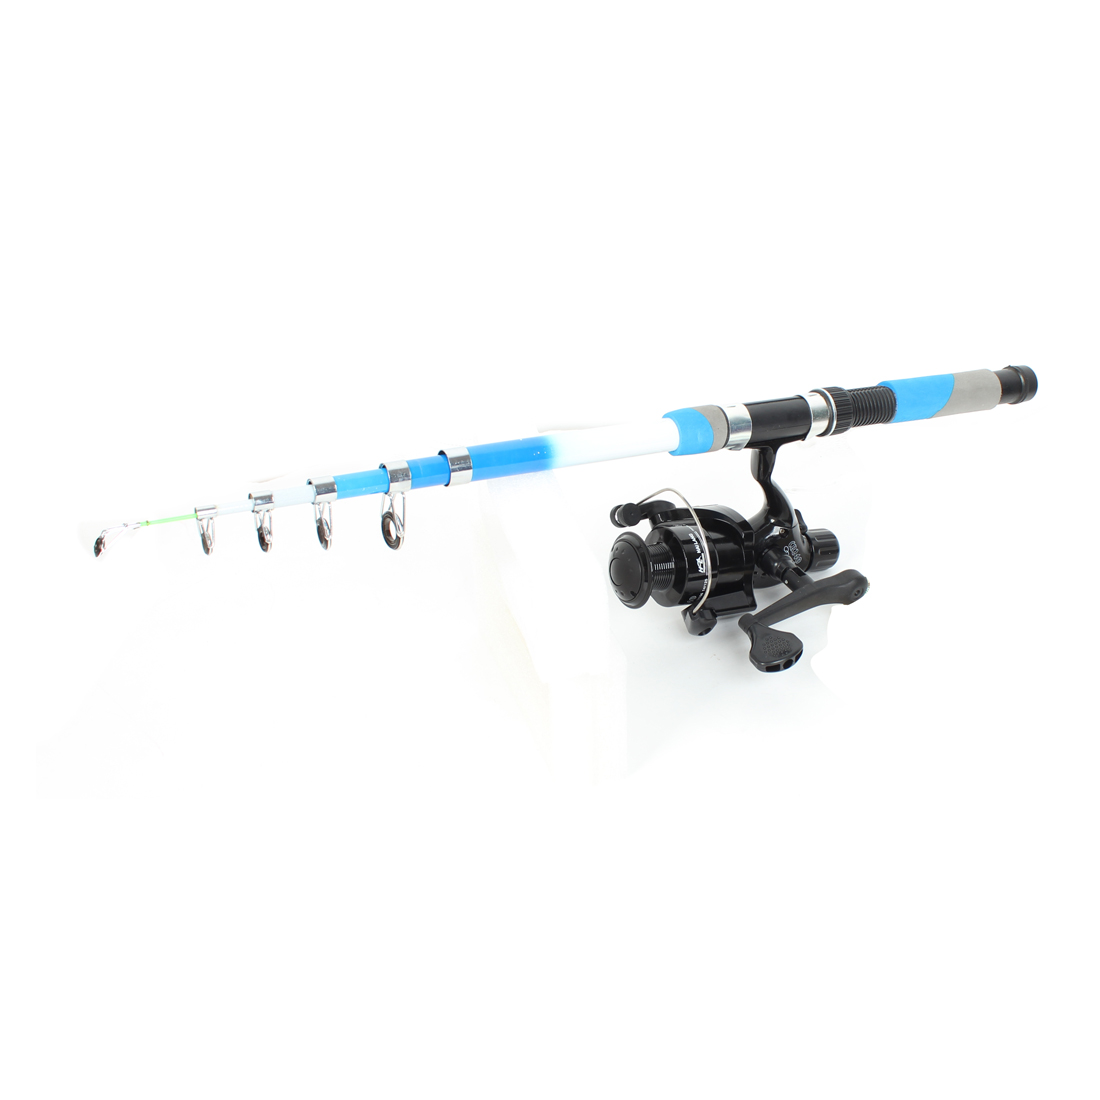 2.1M 5 Sections Carbon Fiber Telescoping Fishing Rod Pole w Spinning Reel